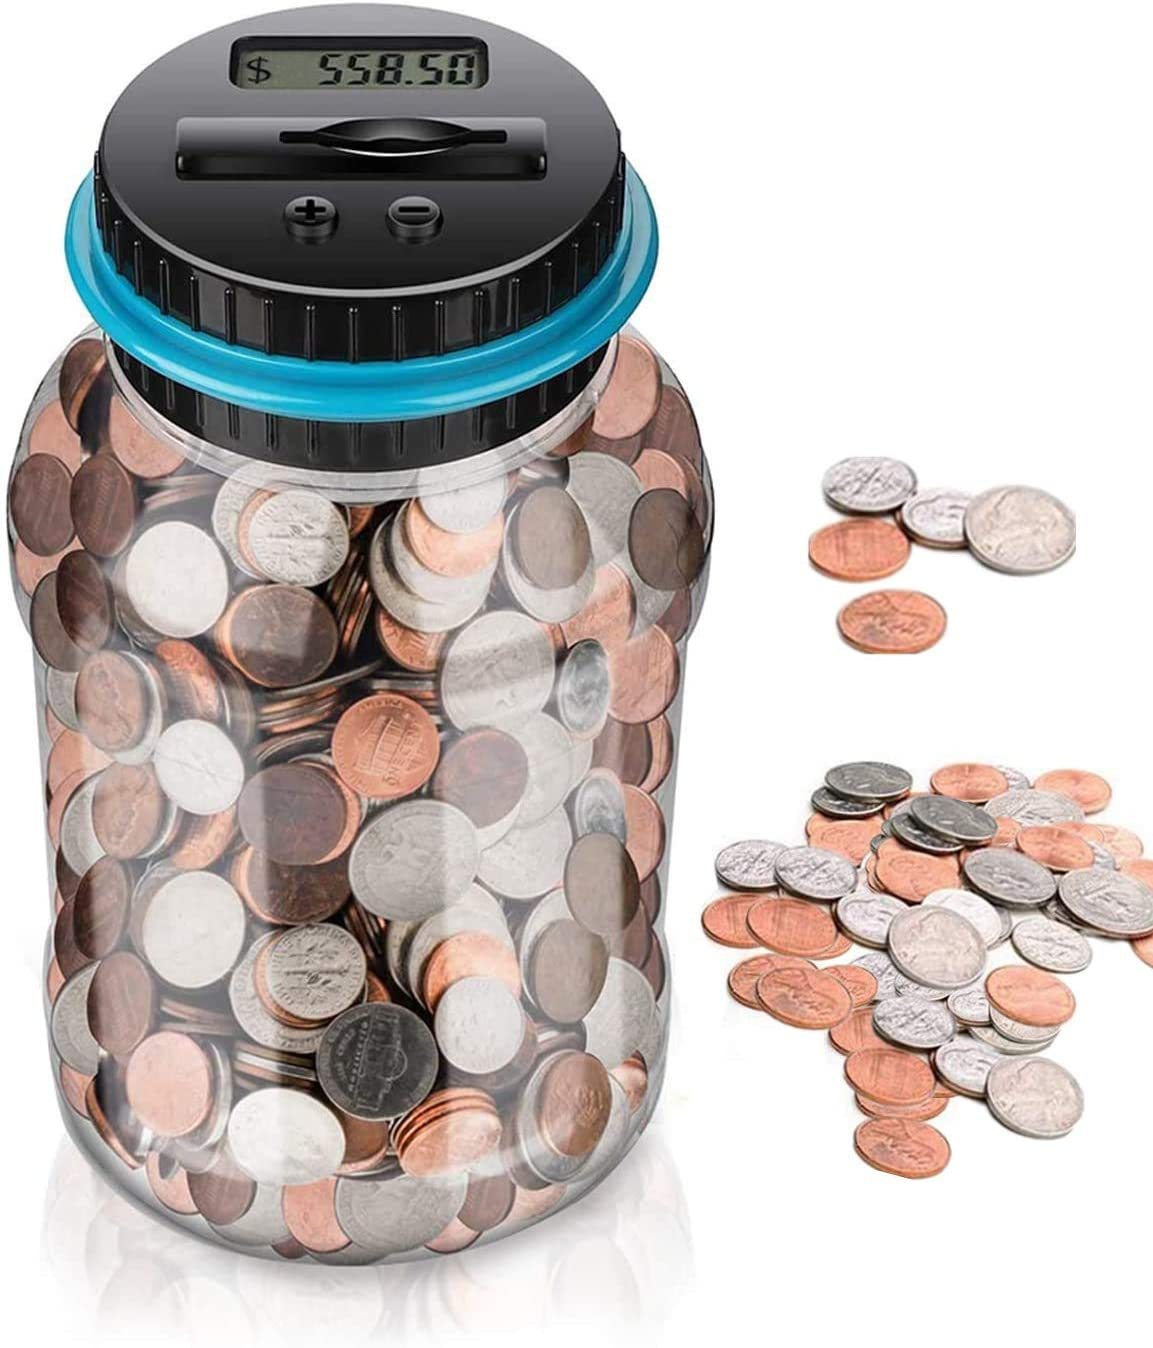 Tradewinds Coin Counting Jar with Digital LCD Display